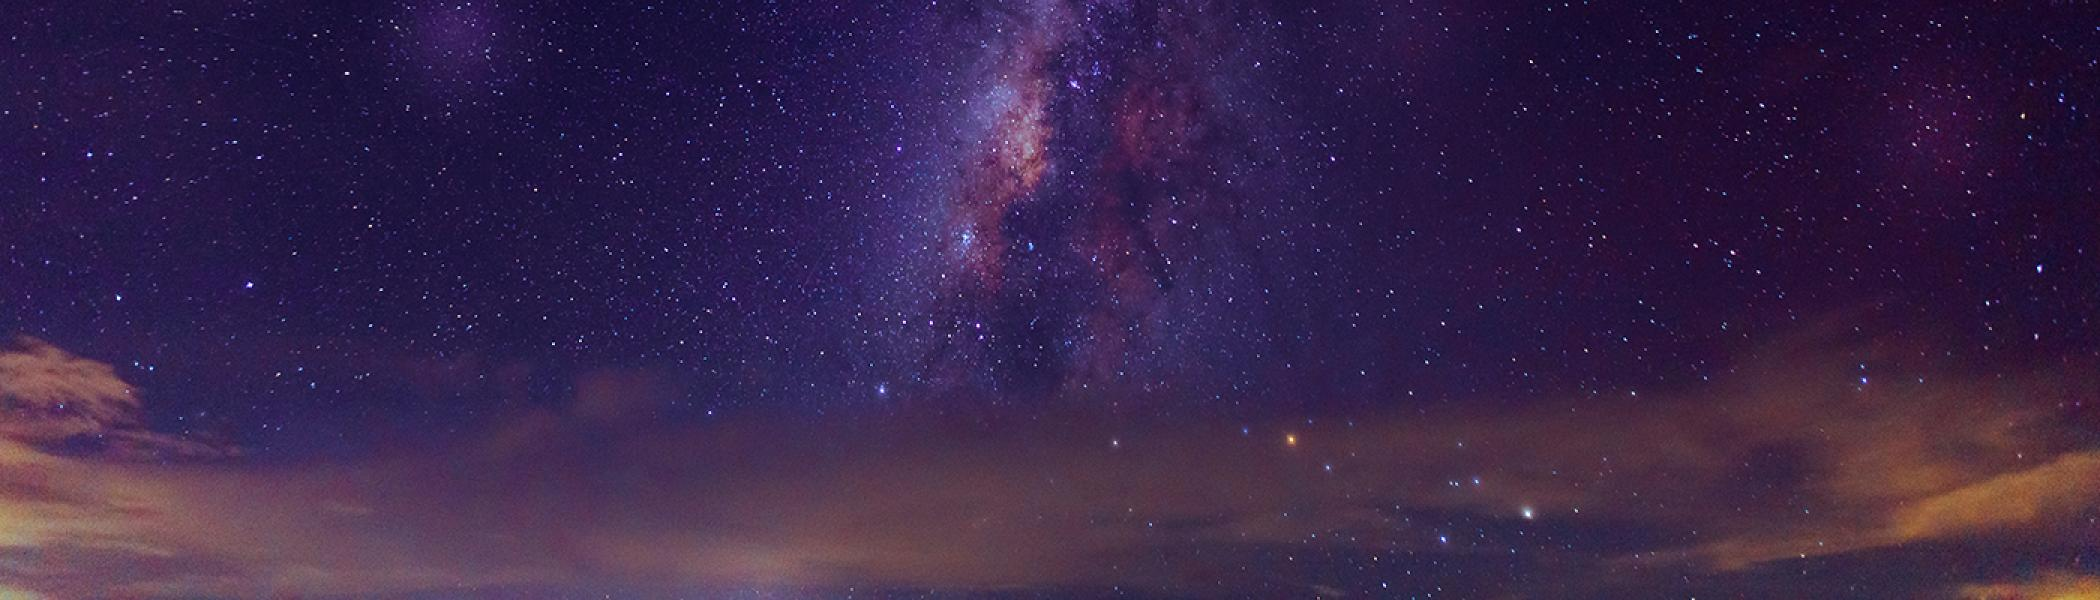 The night's sky with the milky way and bright stars